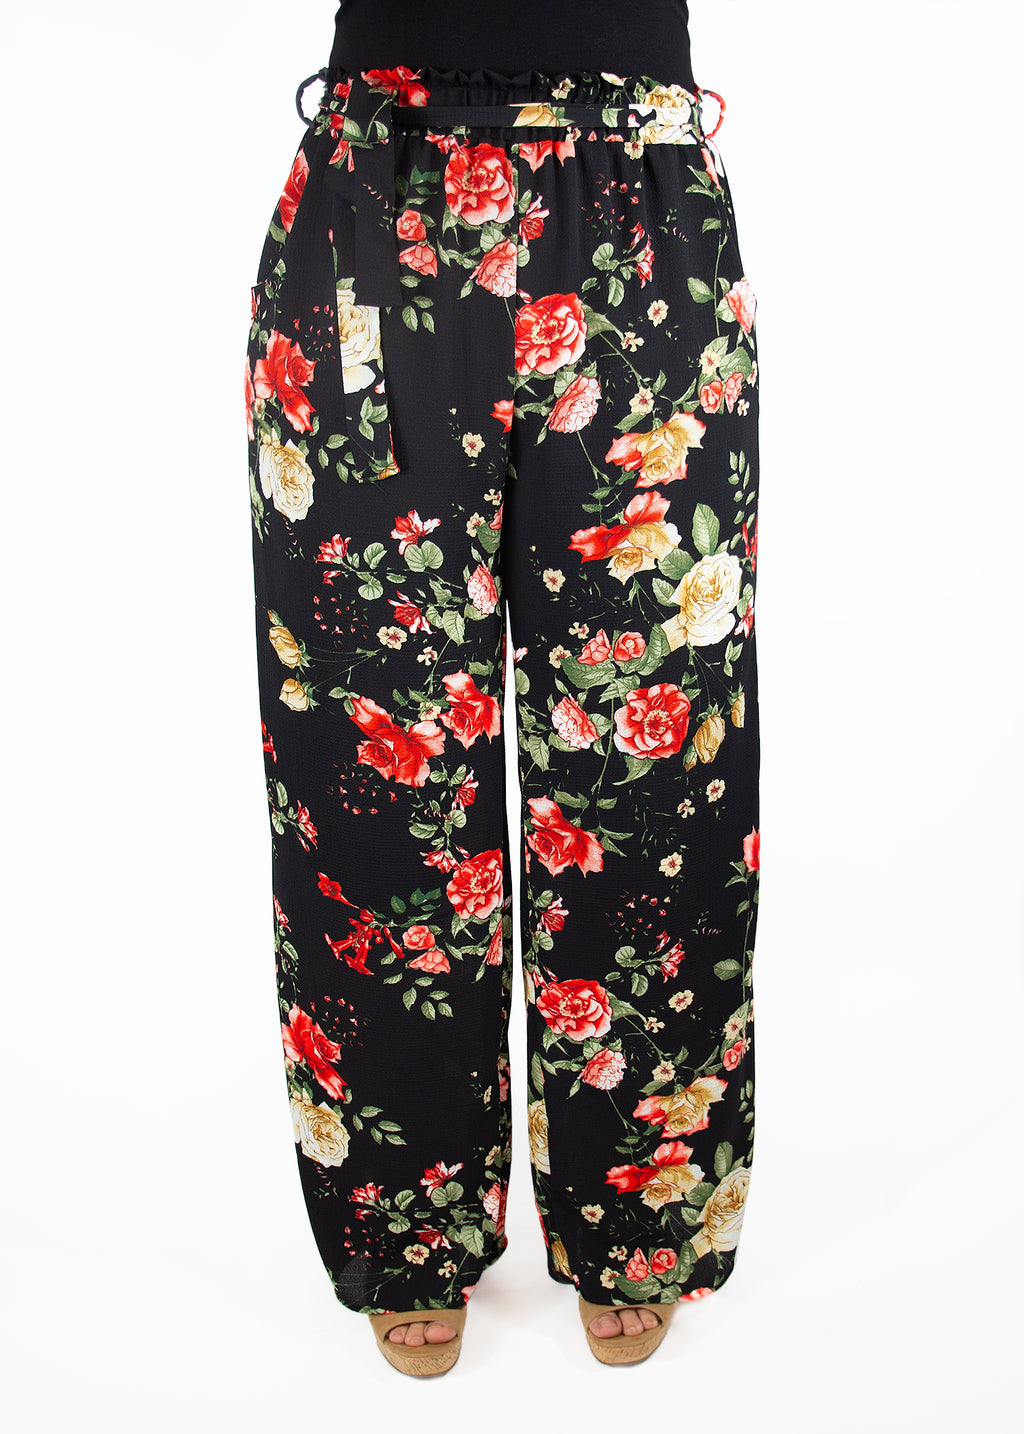 Hydrangea Palazzo Pants in Florals and Stripes